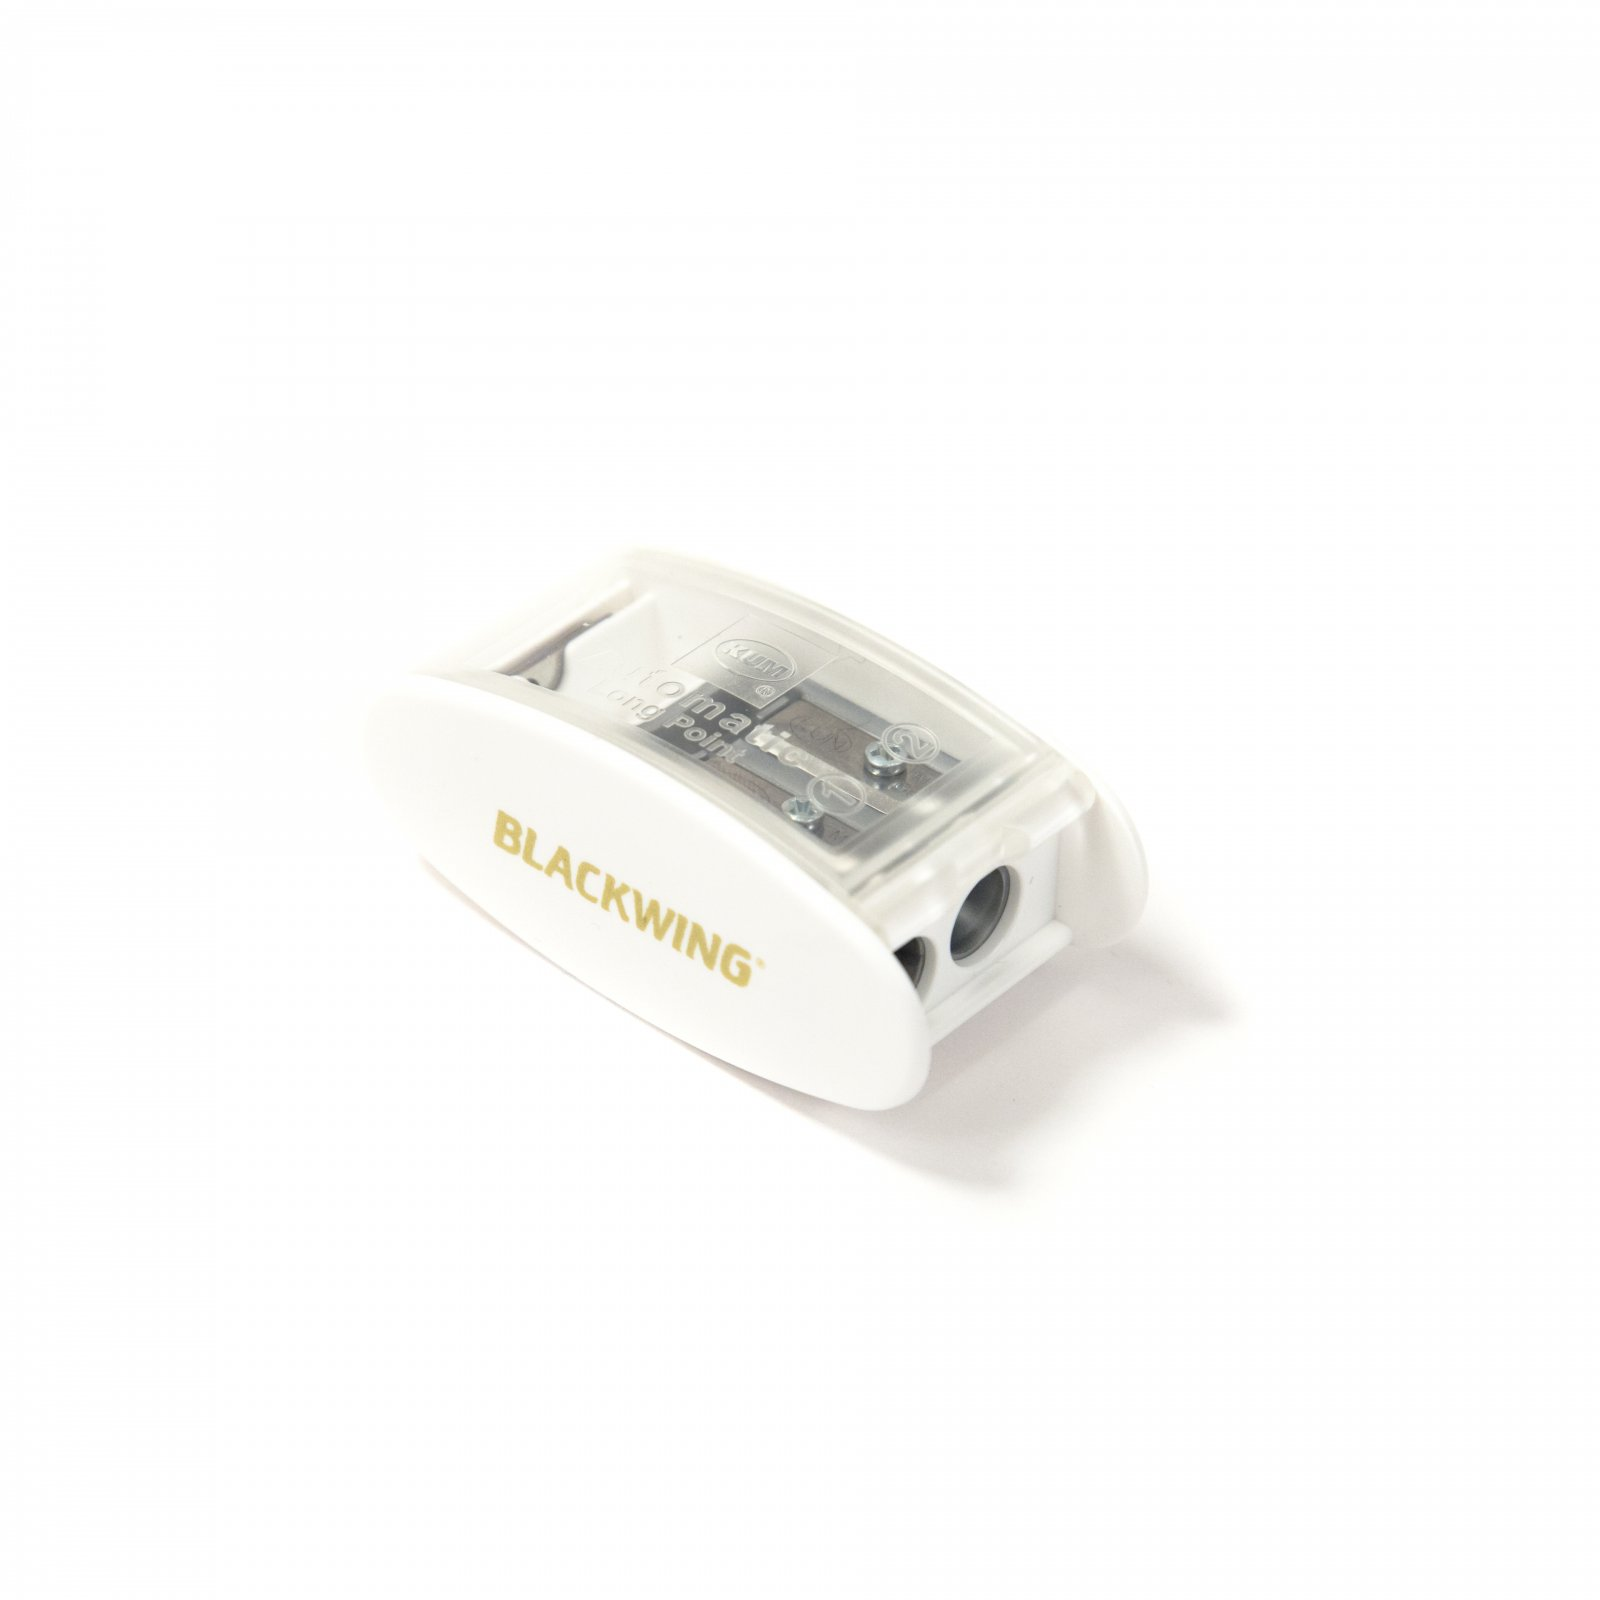 Long-Point Pencil Sharpener by Blackwing - White